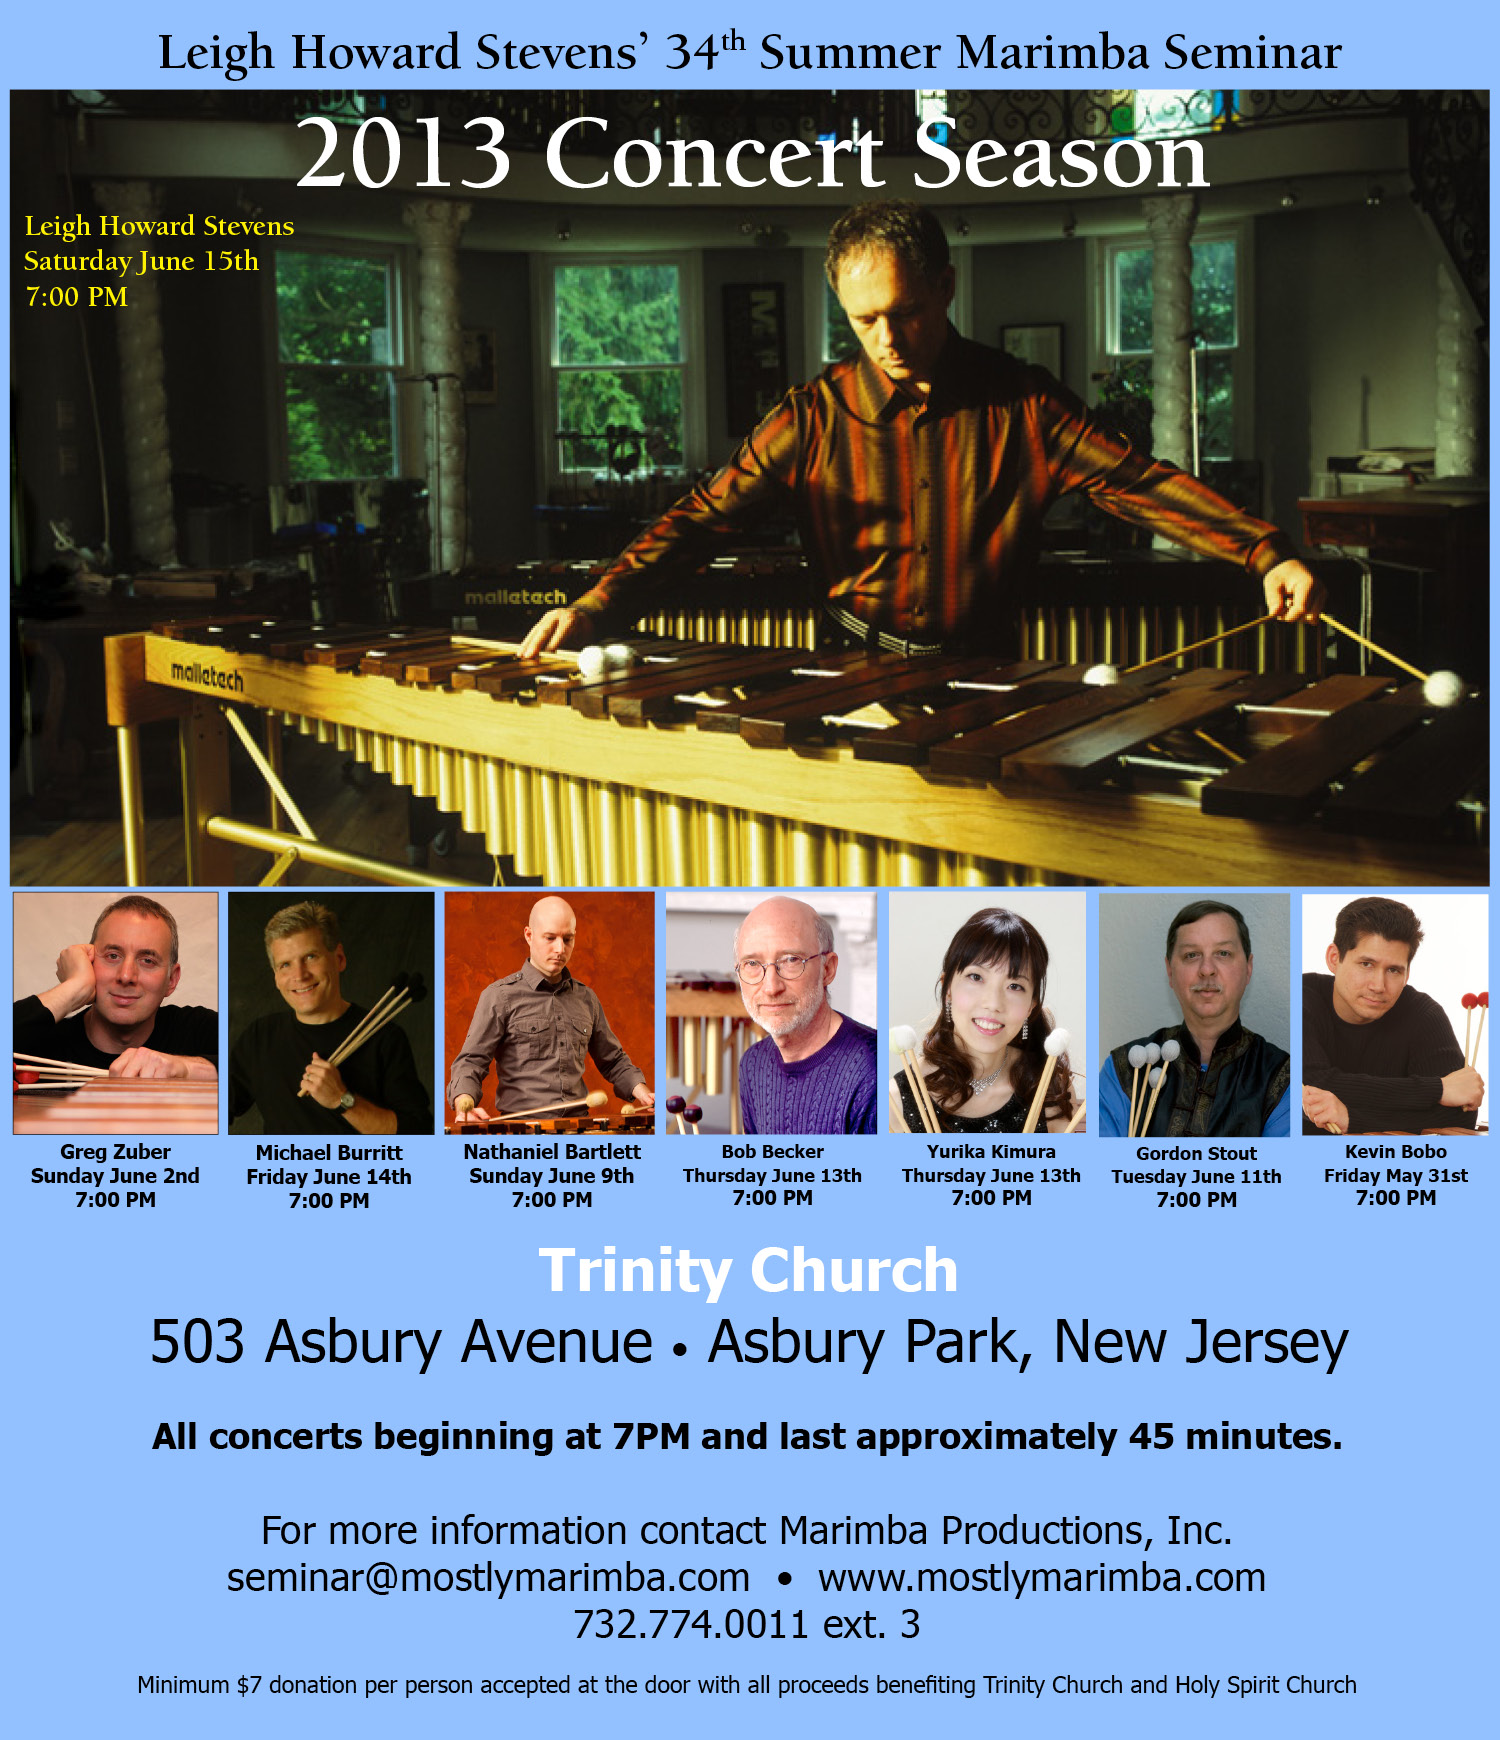 Leigh Howard Stevens' 34th Summer Marimba Seminar Concerts